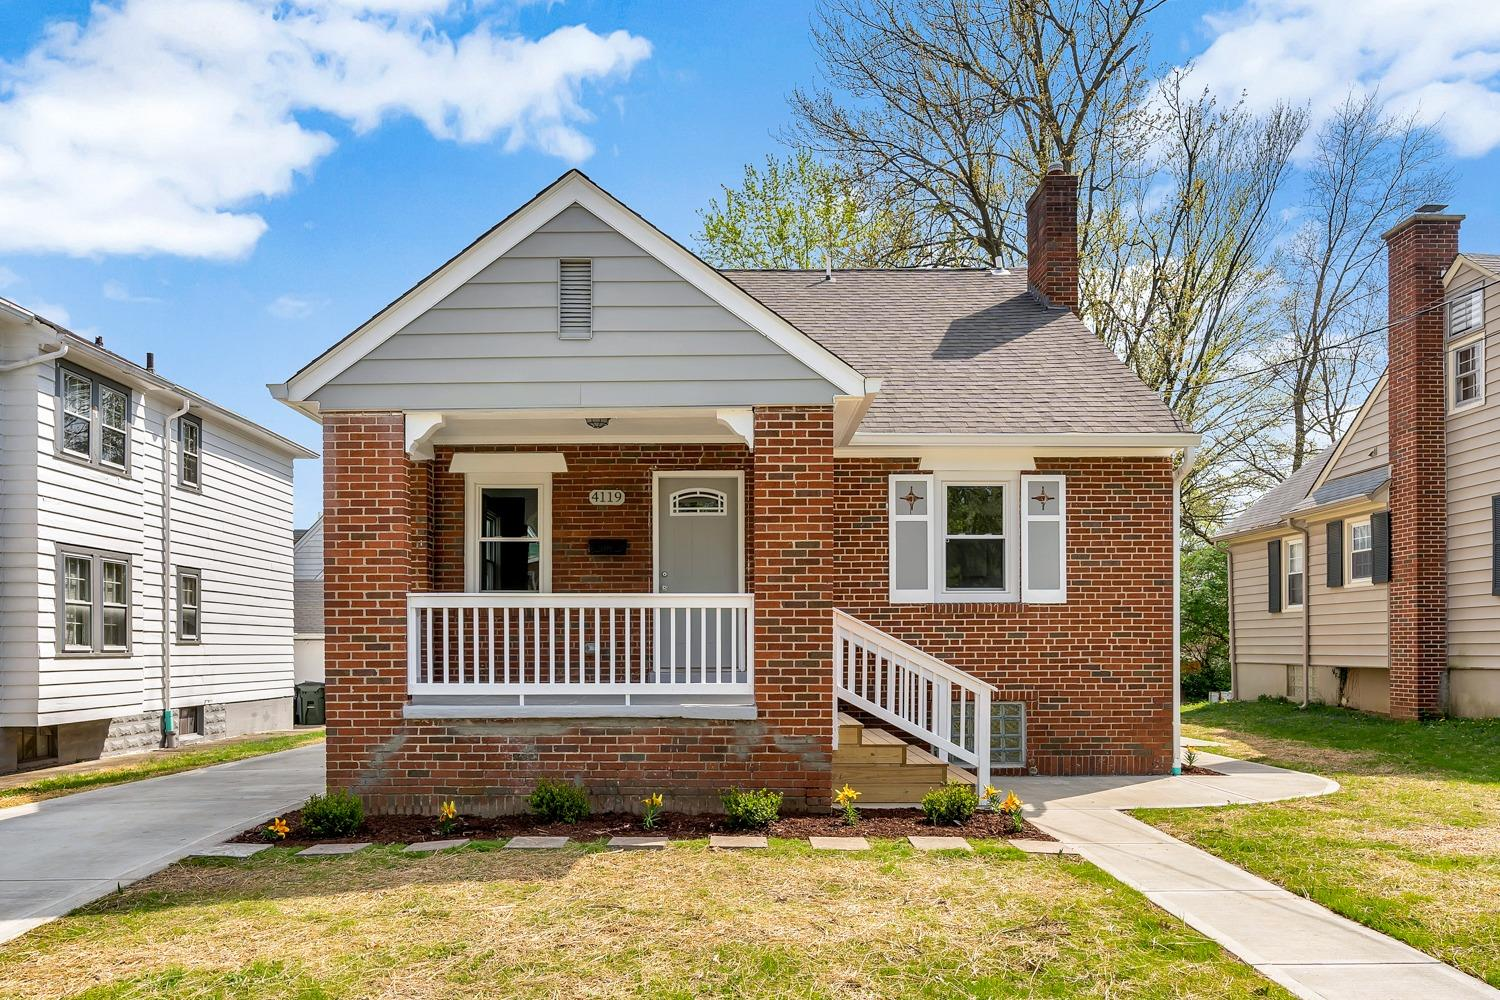 4119 St James Ave Silverton, OH